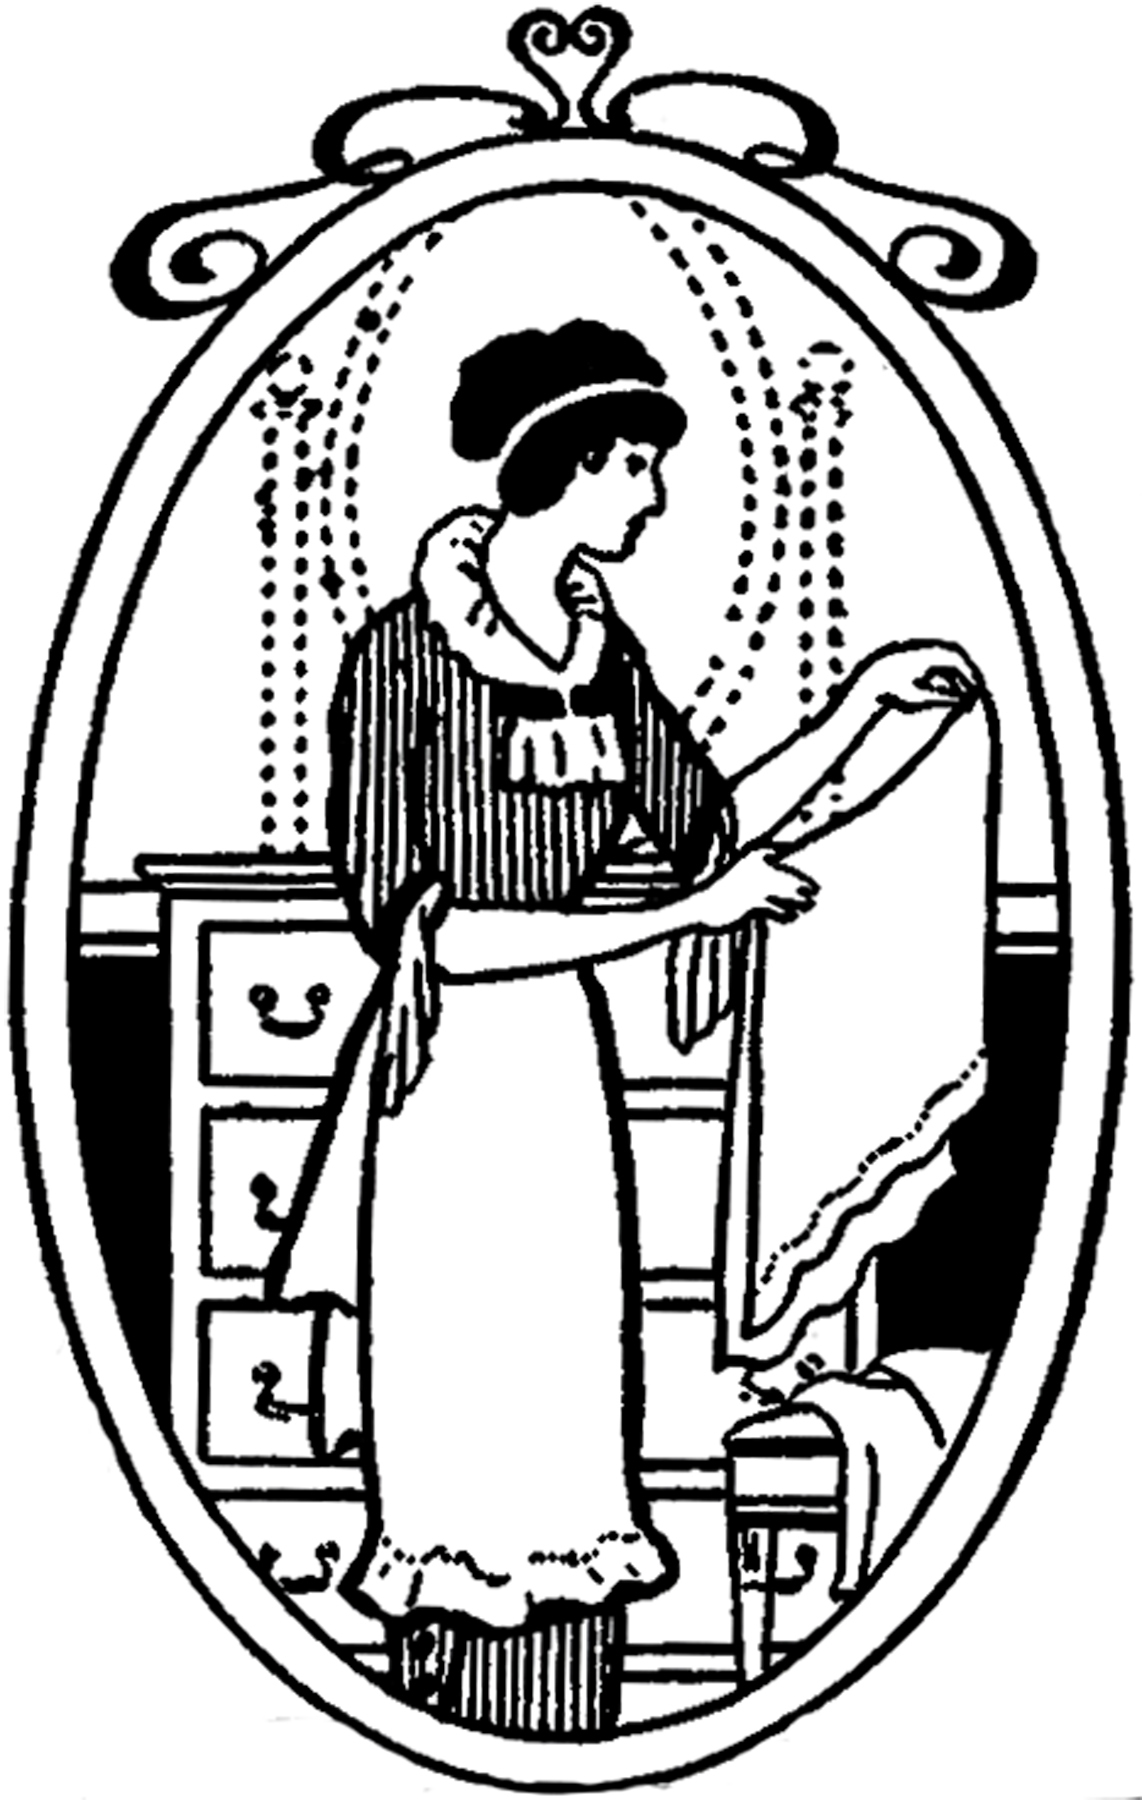 Vintage Maid Image - Laundry! - The Graphics Fairy